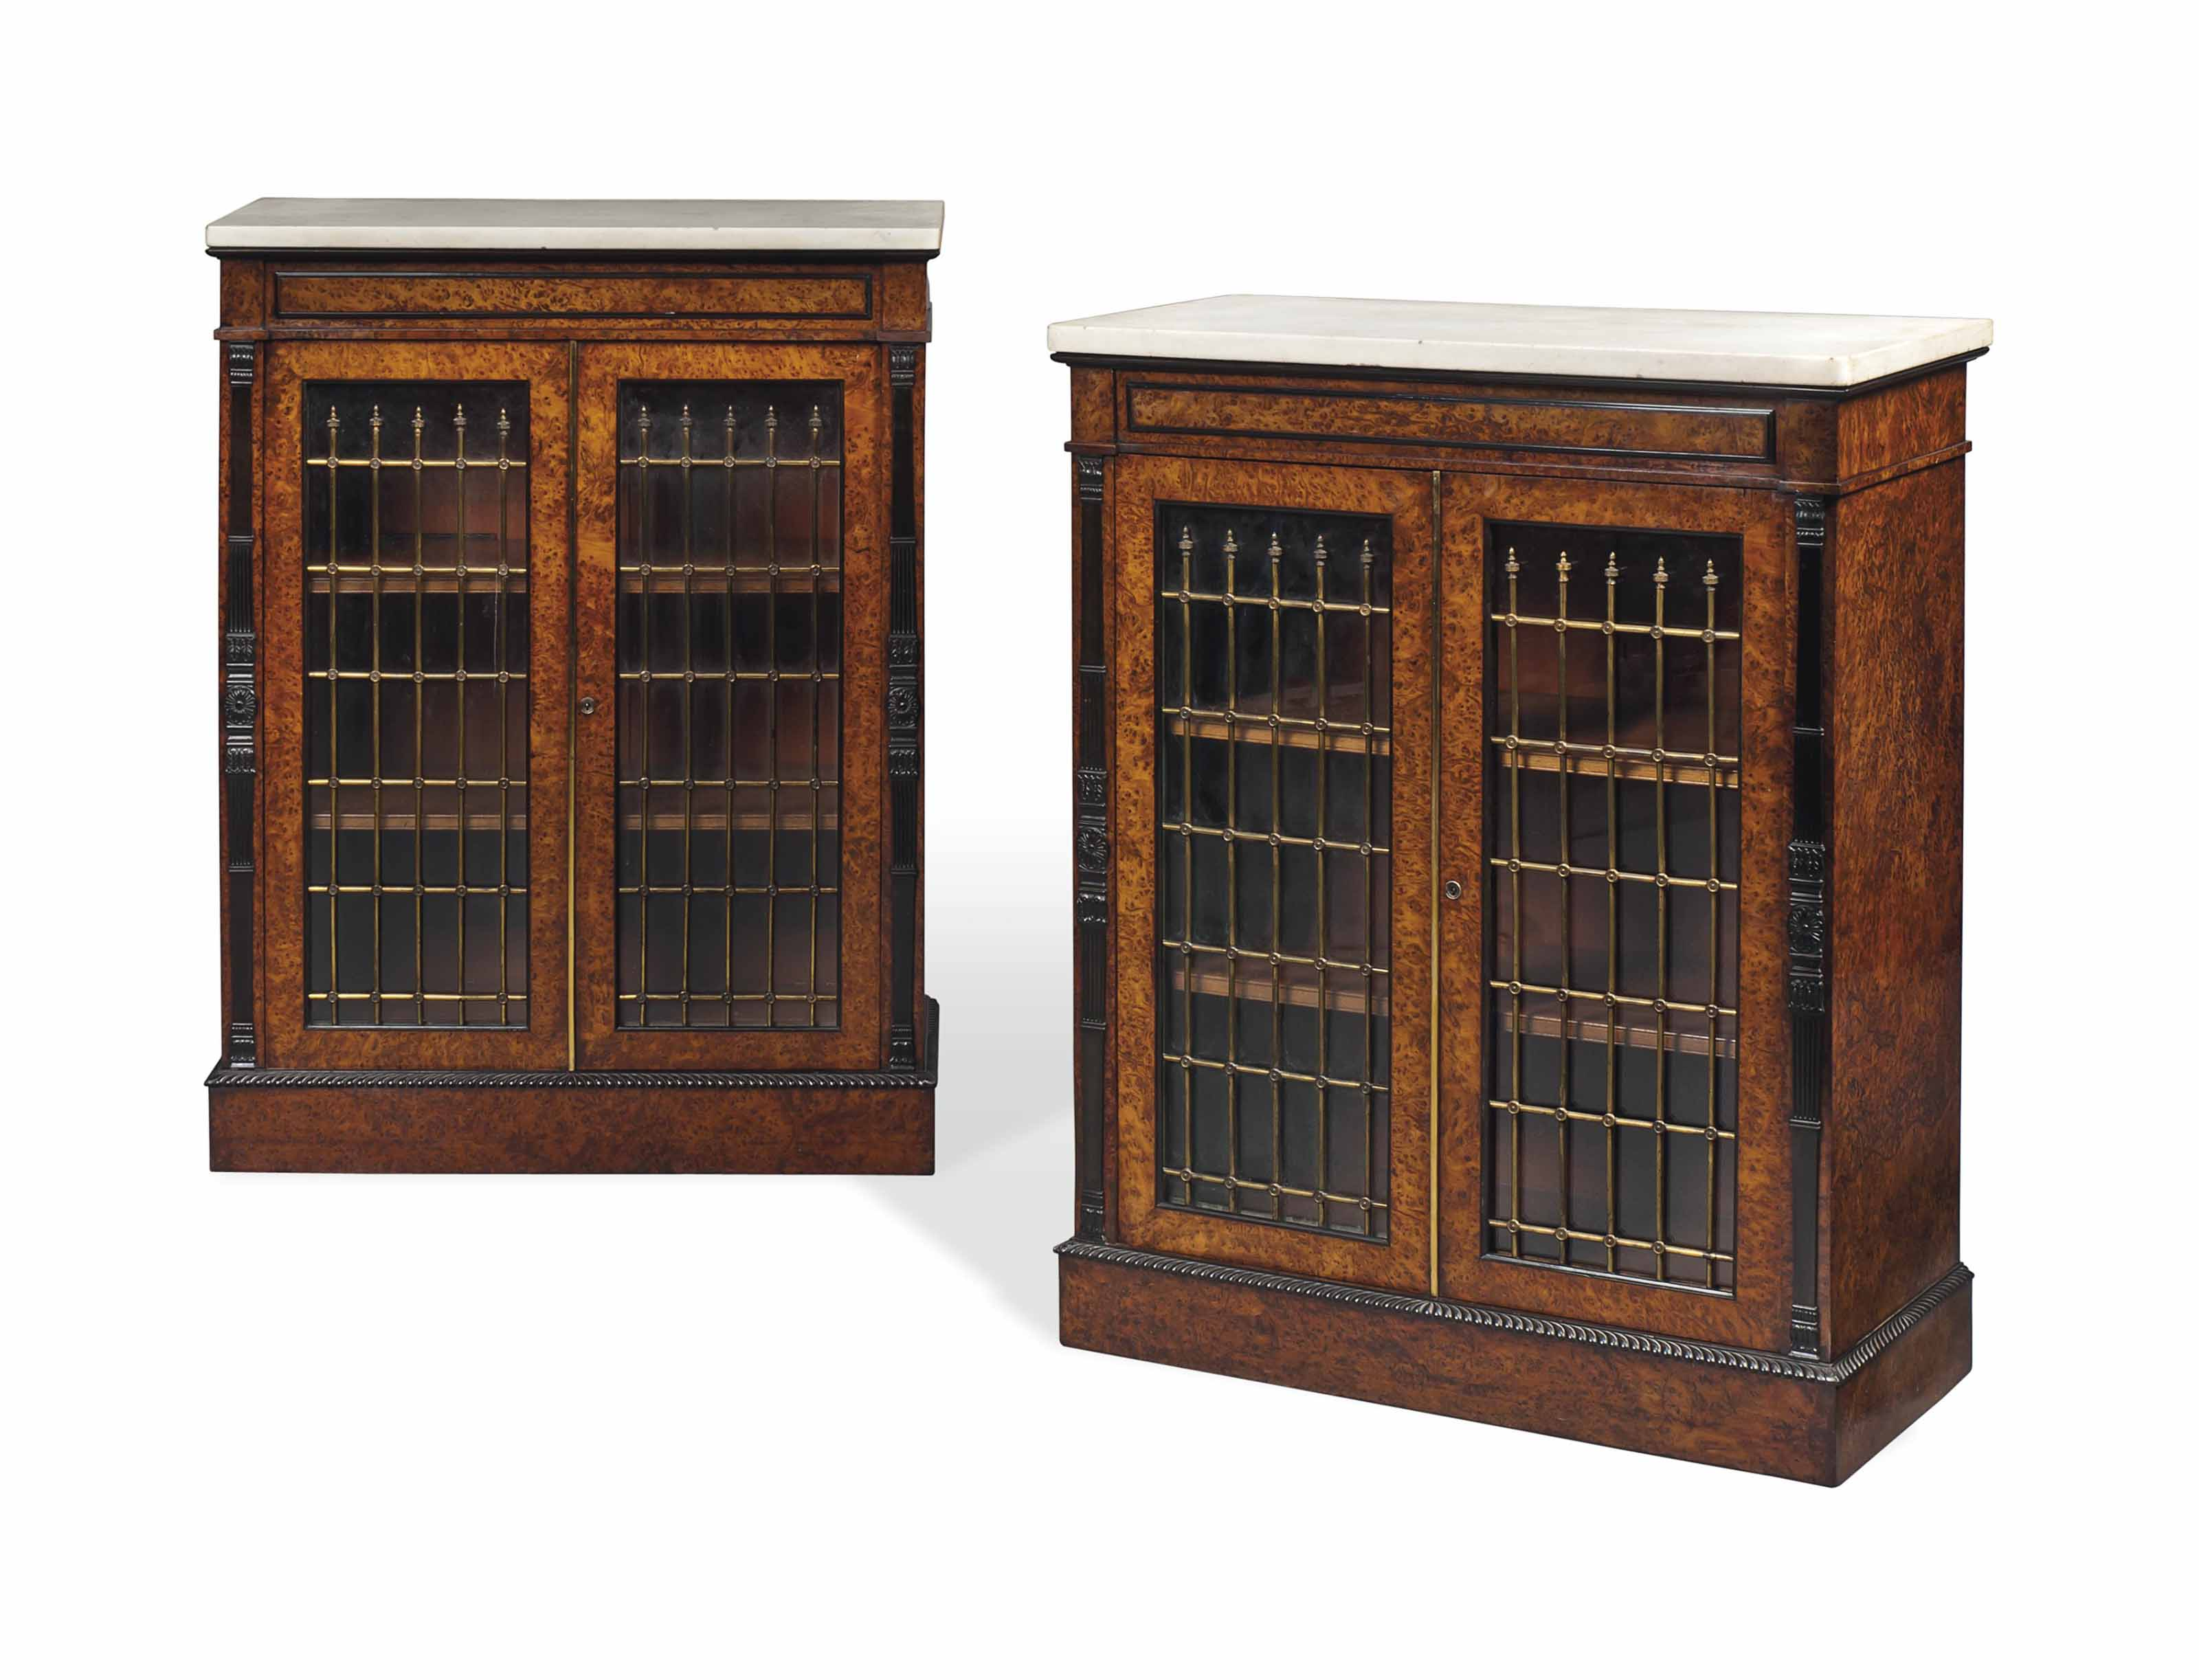 A PAIR OF GEORGE IV BRASS-MOUNTED BURR YEW SIDE CABINETS